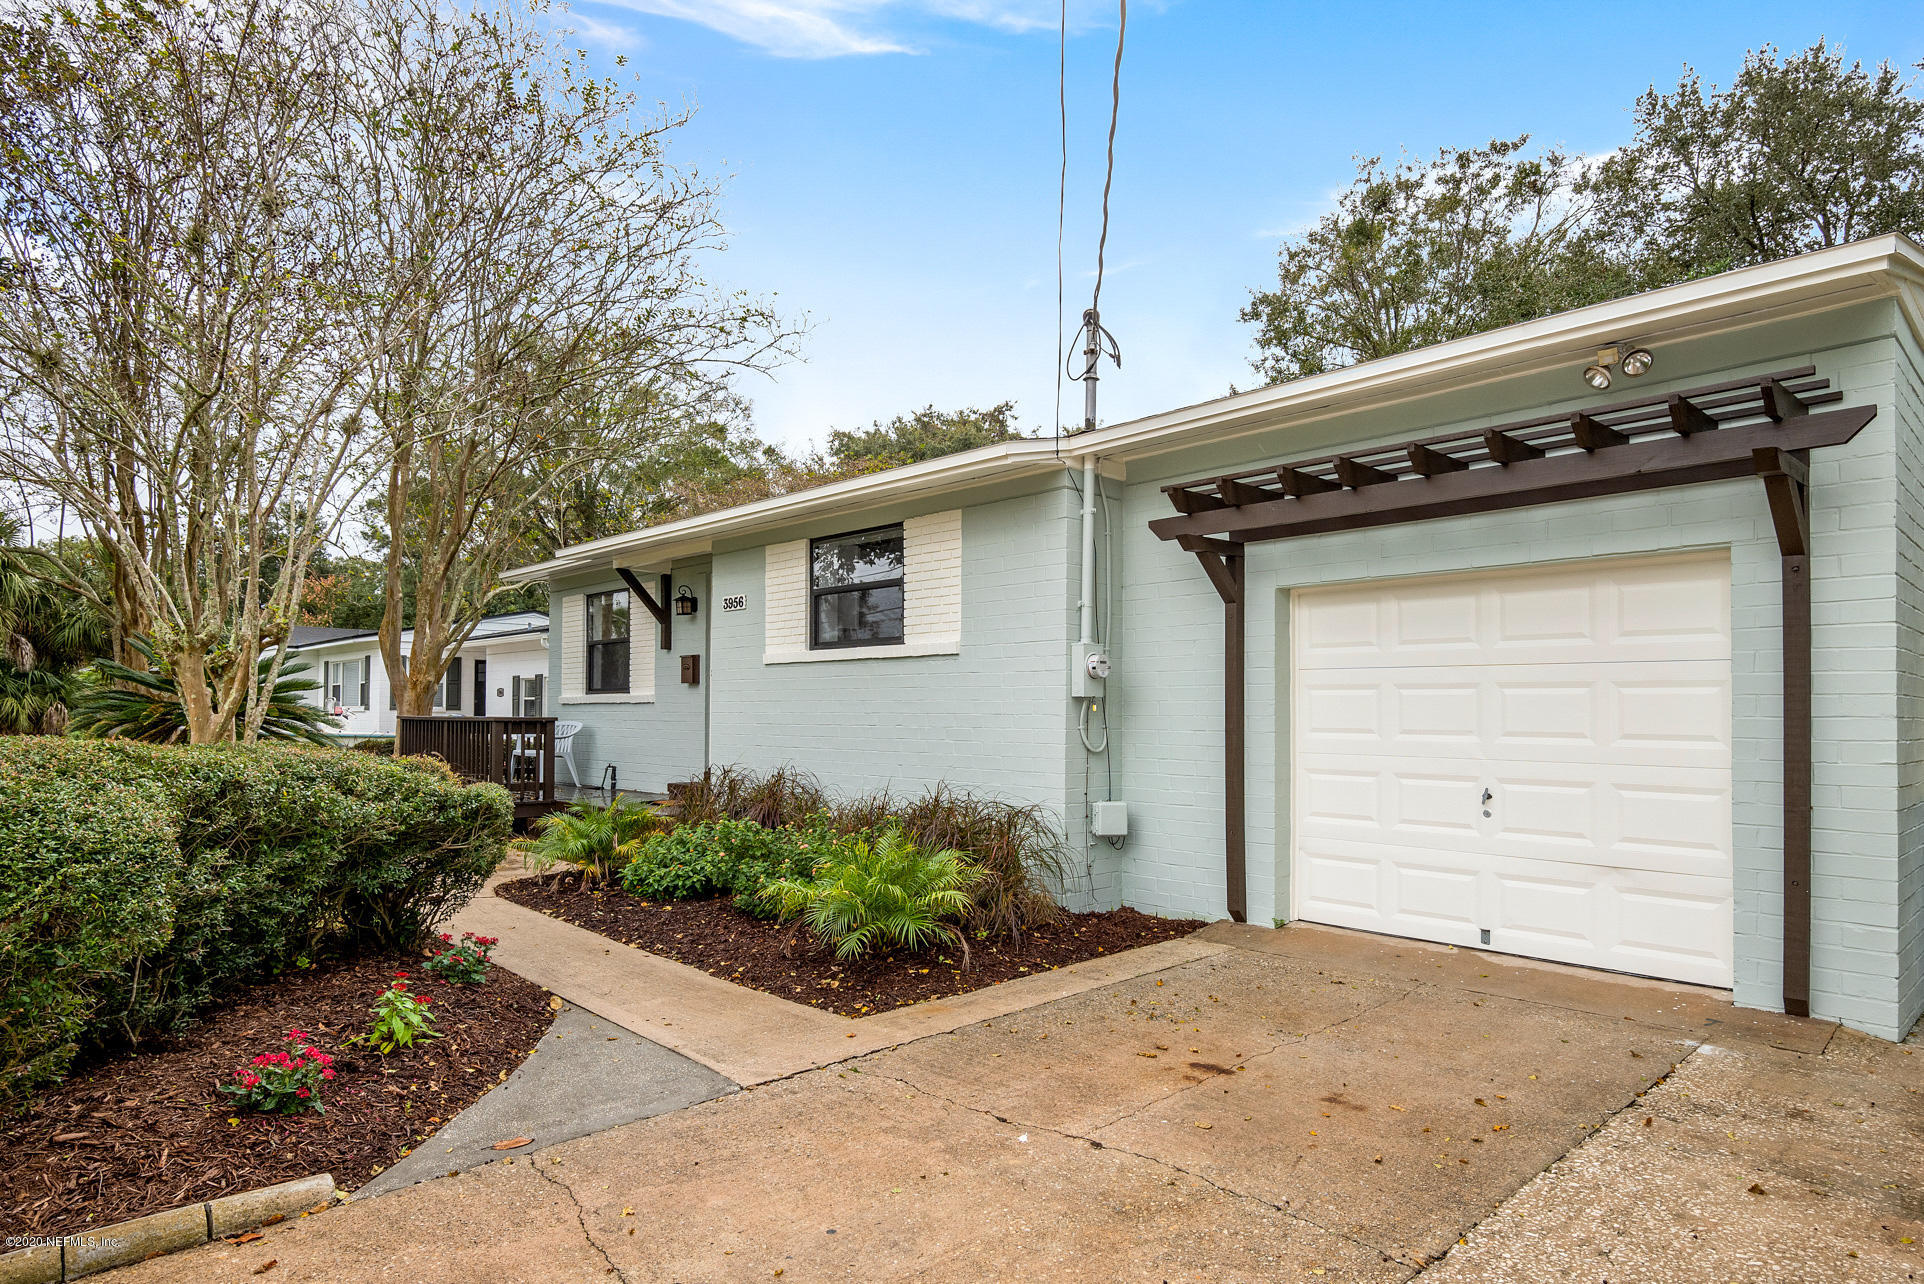 3956 MARIANNA, JACKSONVILLE, FLORIDA 32217, 3 Bedrooms Bedrooms, ,2 BathroomsBathrooms,Residential,For sale,MARIANNA,1082455